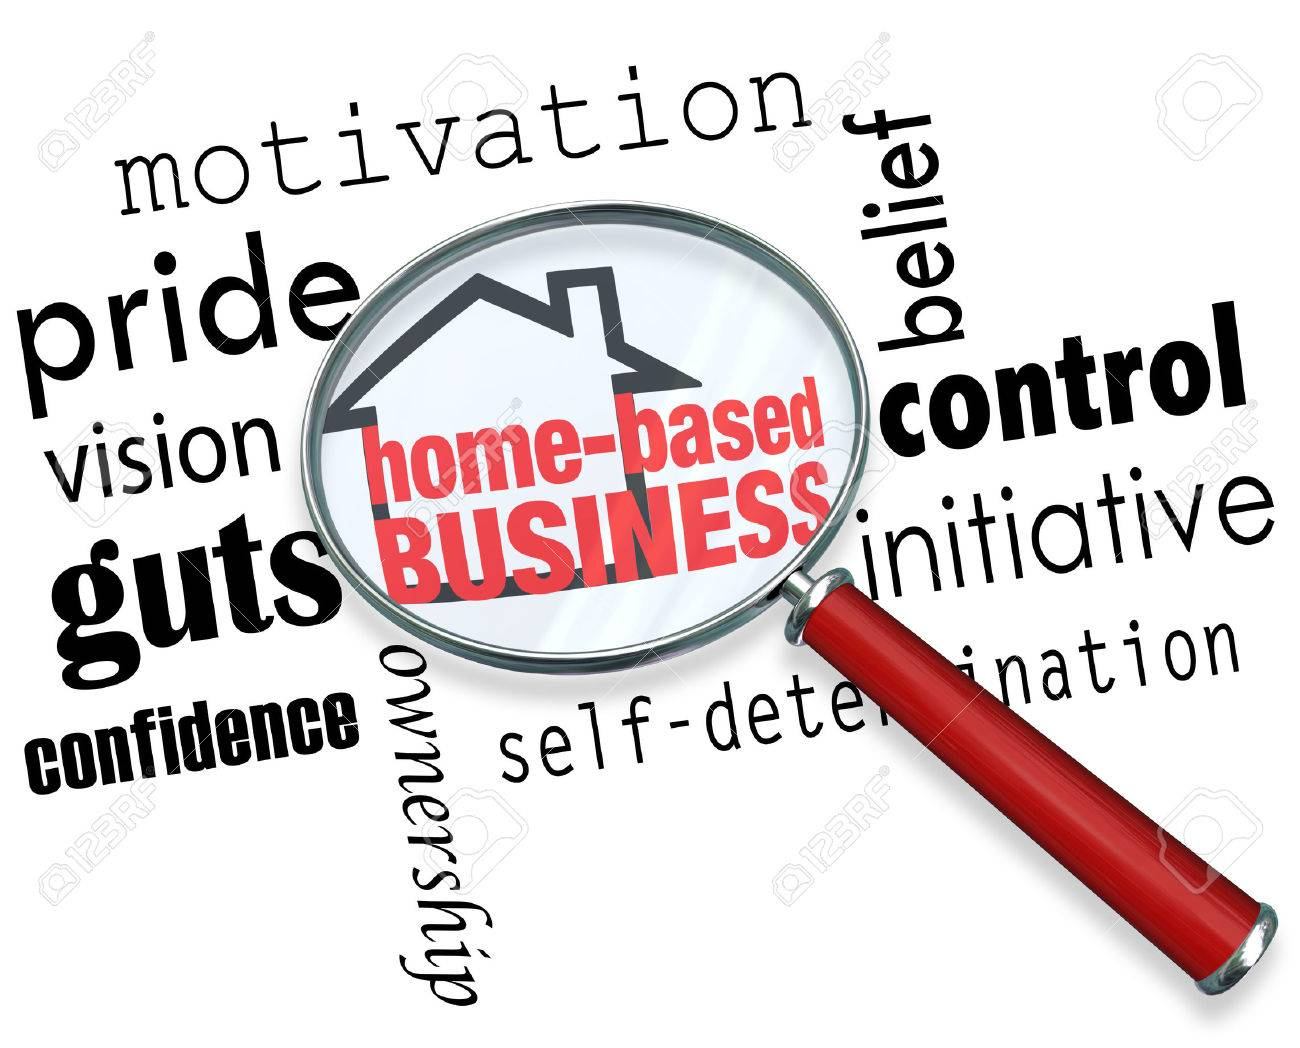 home based business words and house icon under a magnifying glass home based business words and house icon under a magnifying glass surrounded by qualities of a